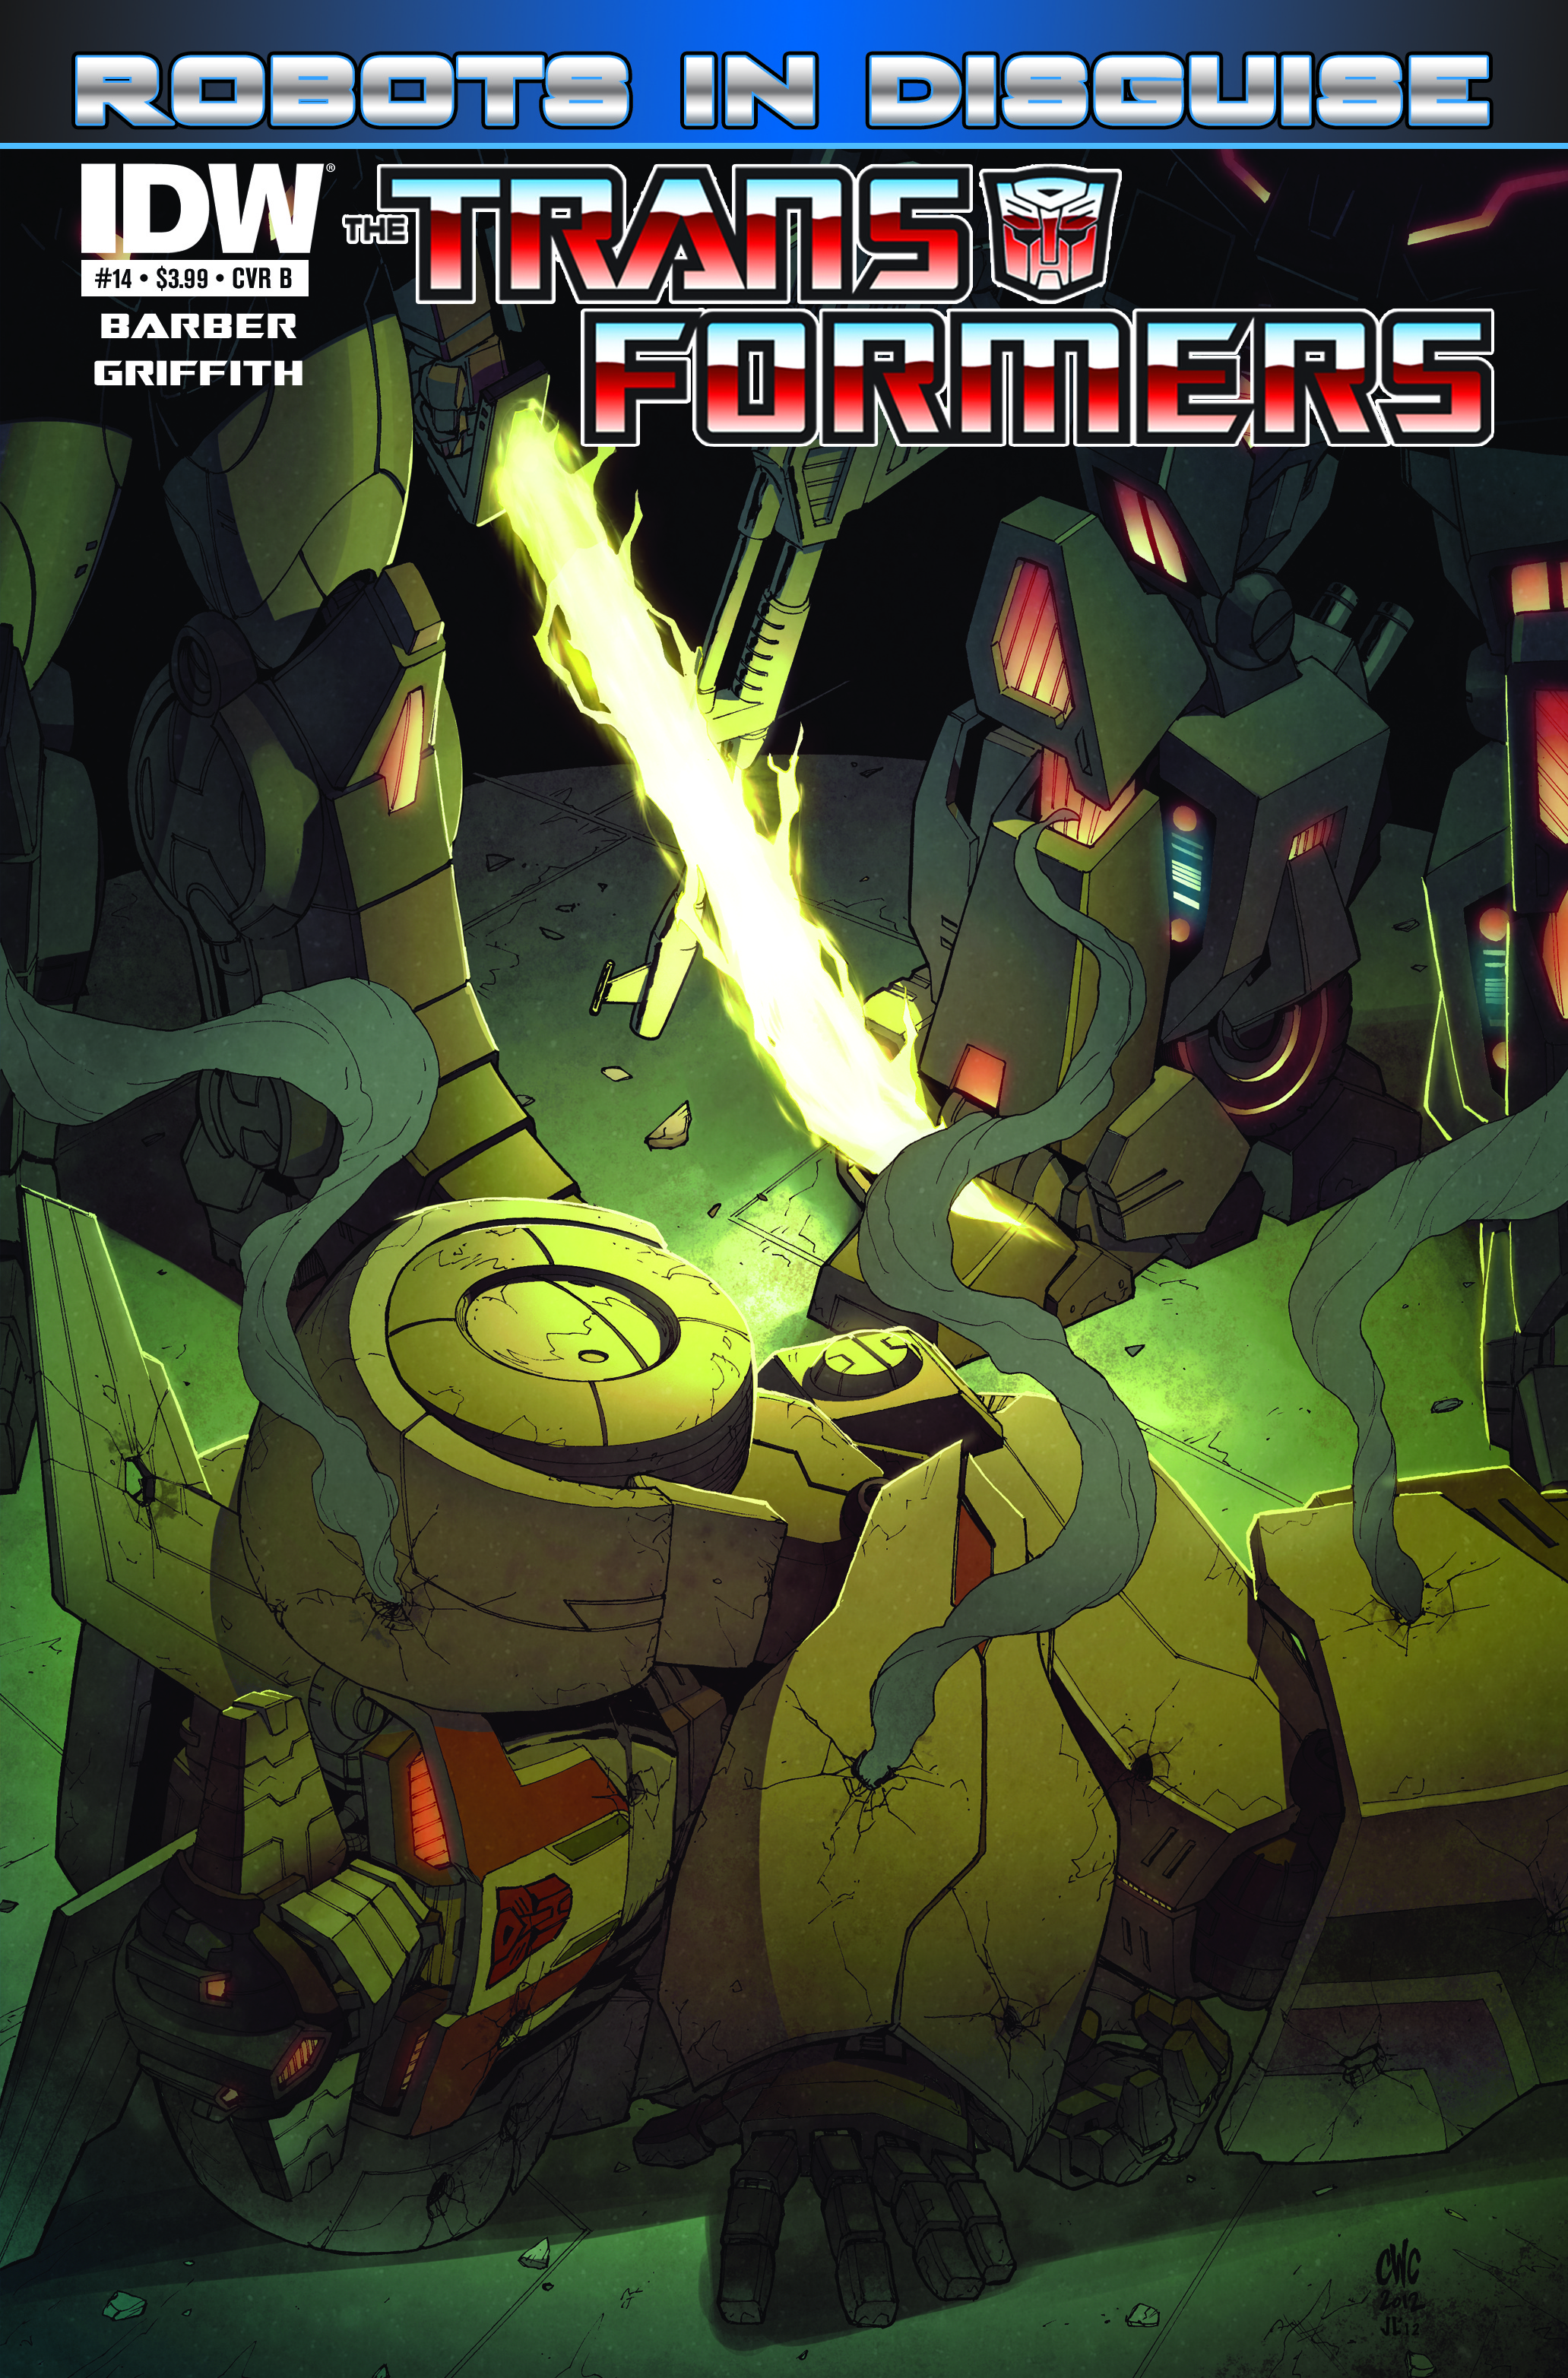 Transformers: Robots in Disguise #14